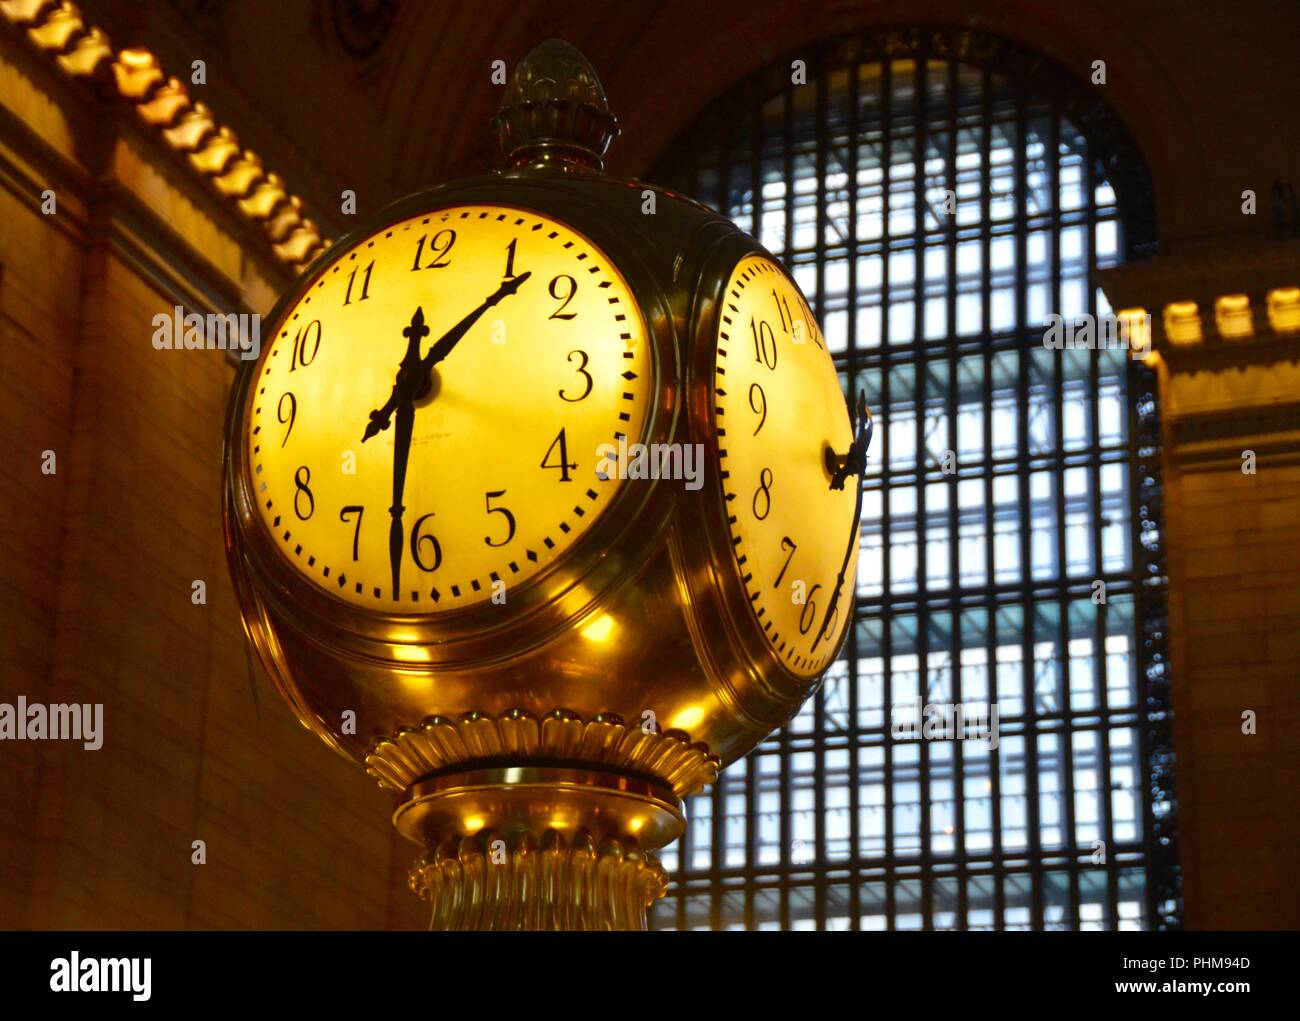 Grand Central Terminal, New York City, USA. - Stock Image